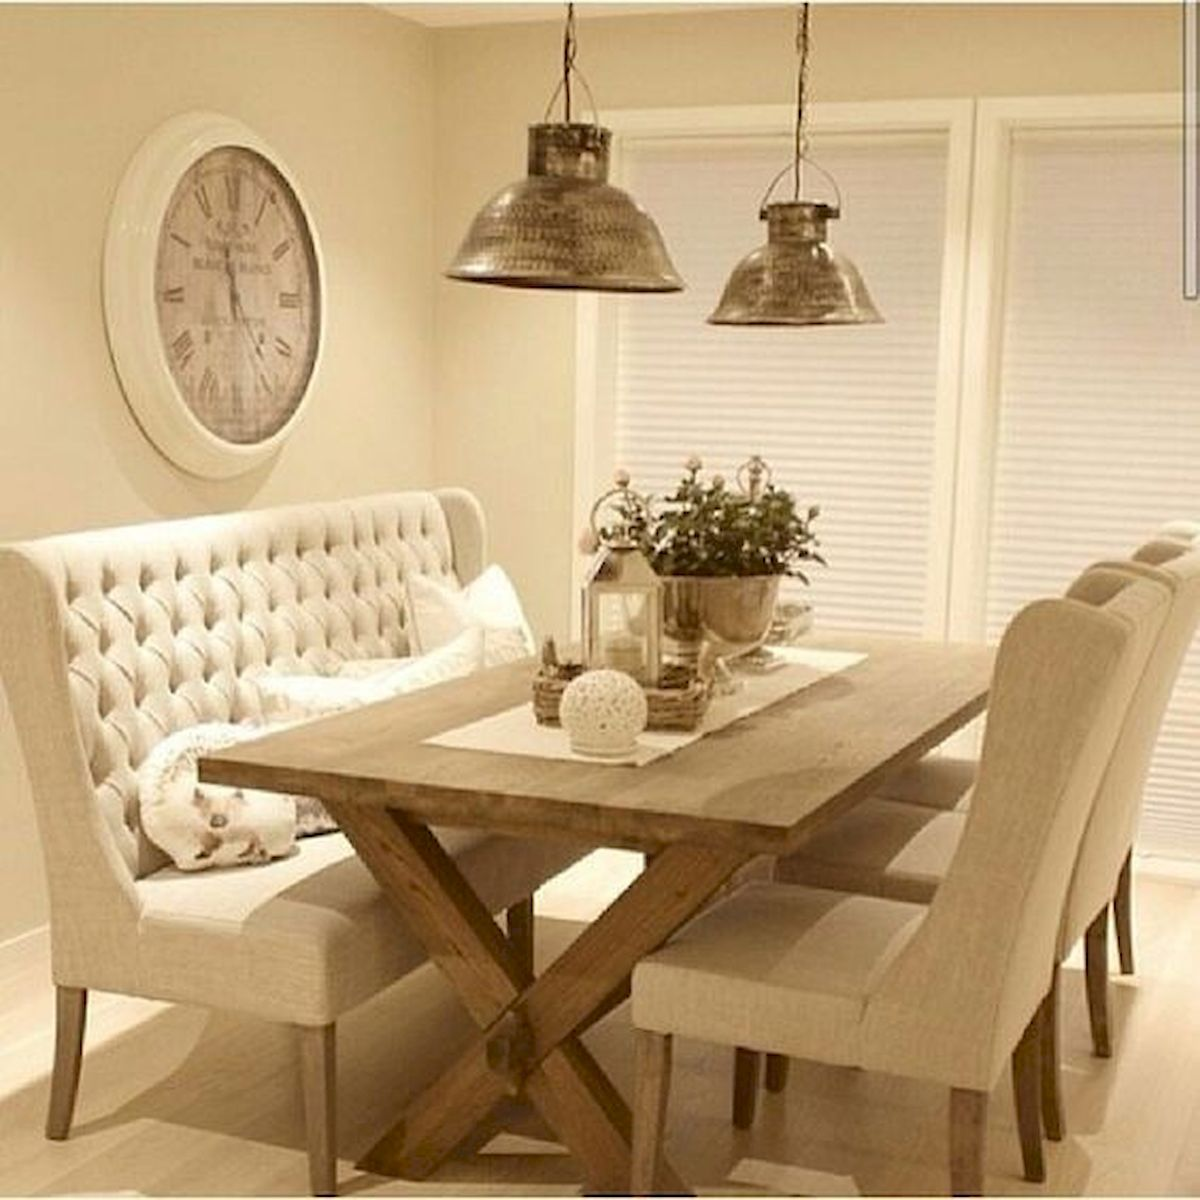 50 Nice DIY Furniture Projects for Dining Rooms Tables Design Ideas (12)